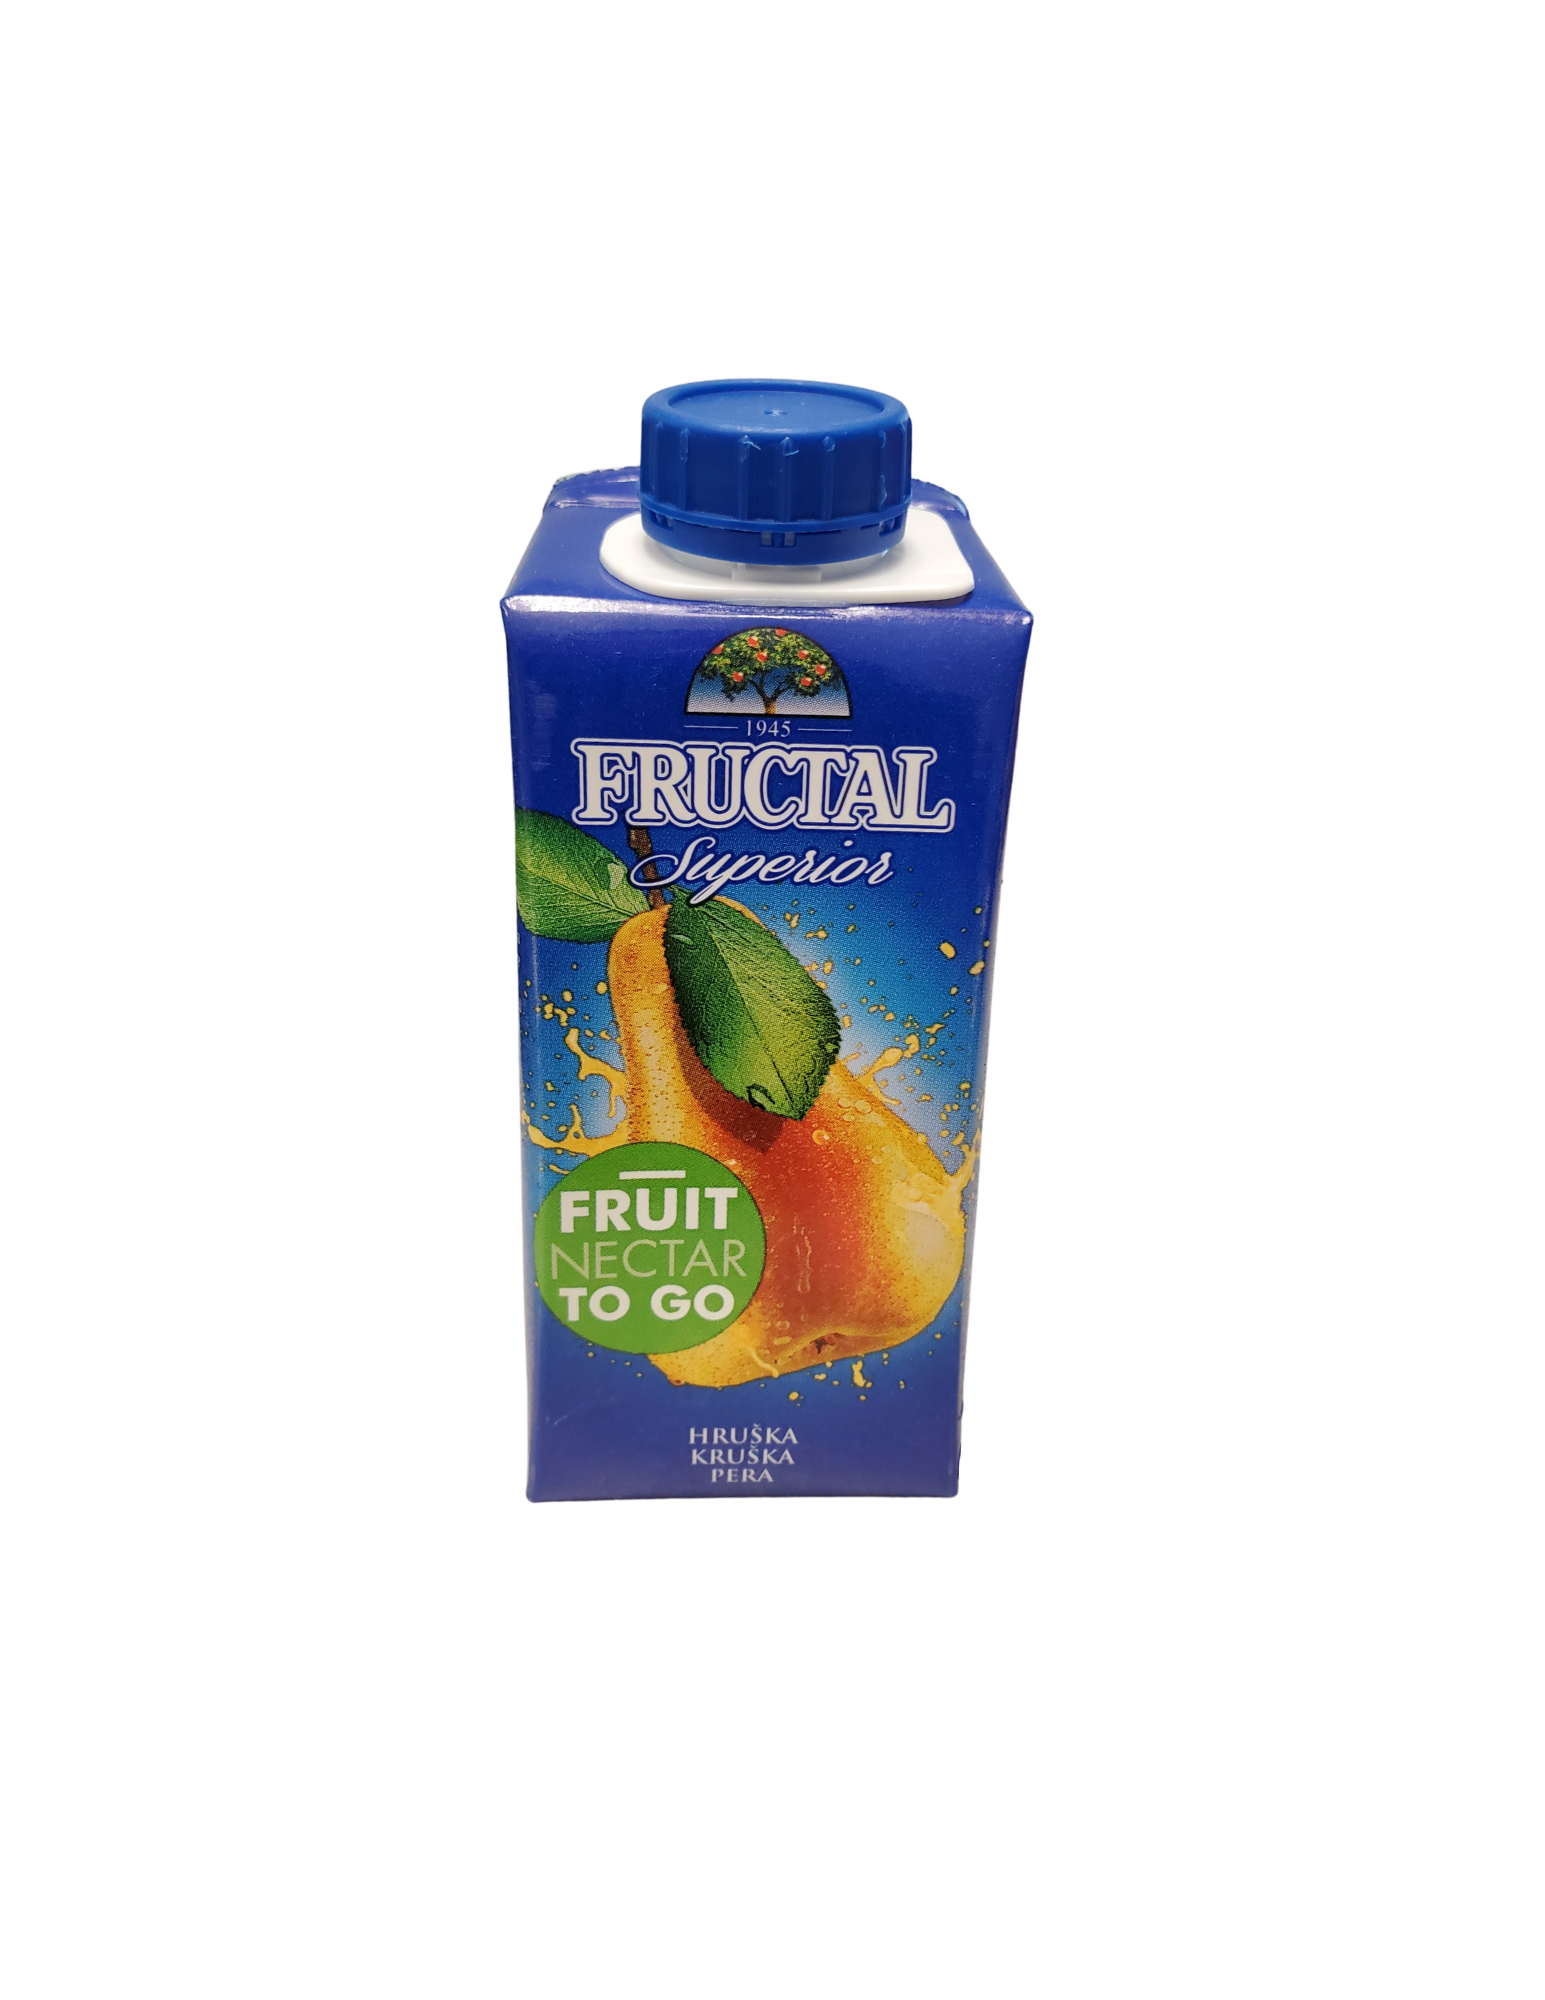 Fructal Tetra Edge | 200 ml | Pear